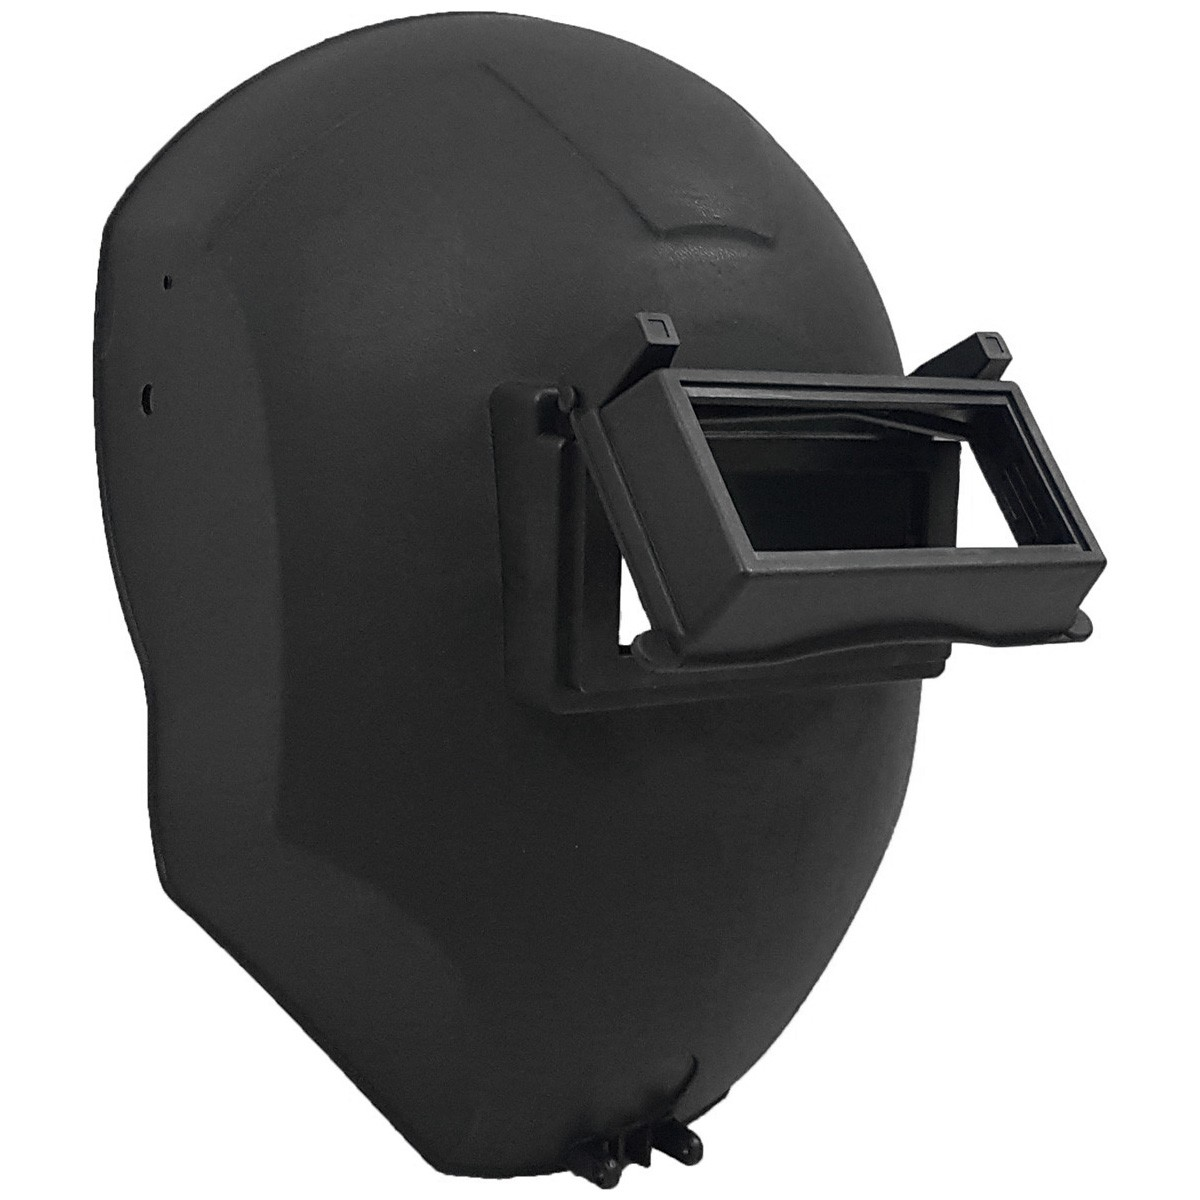 Máscara P/ Solda Super Safety Polipropileno Visor Fixo